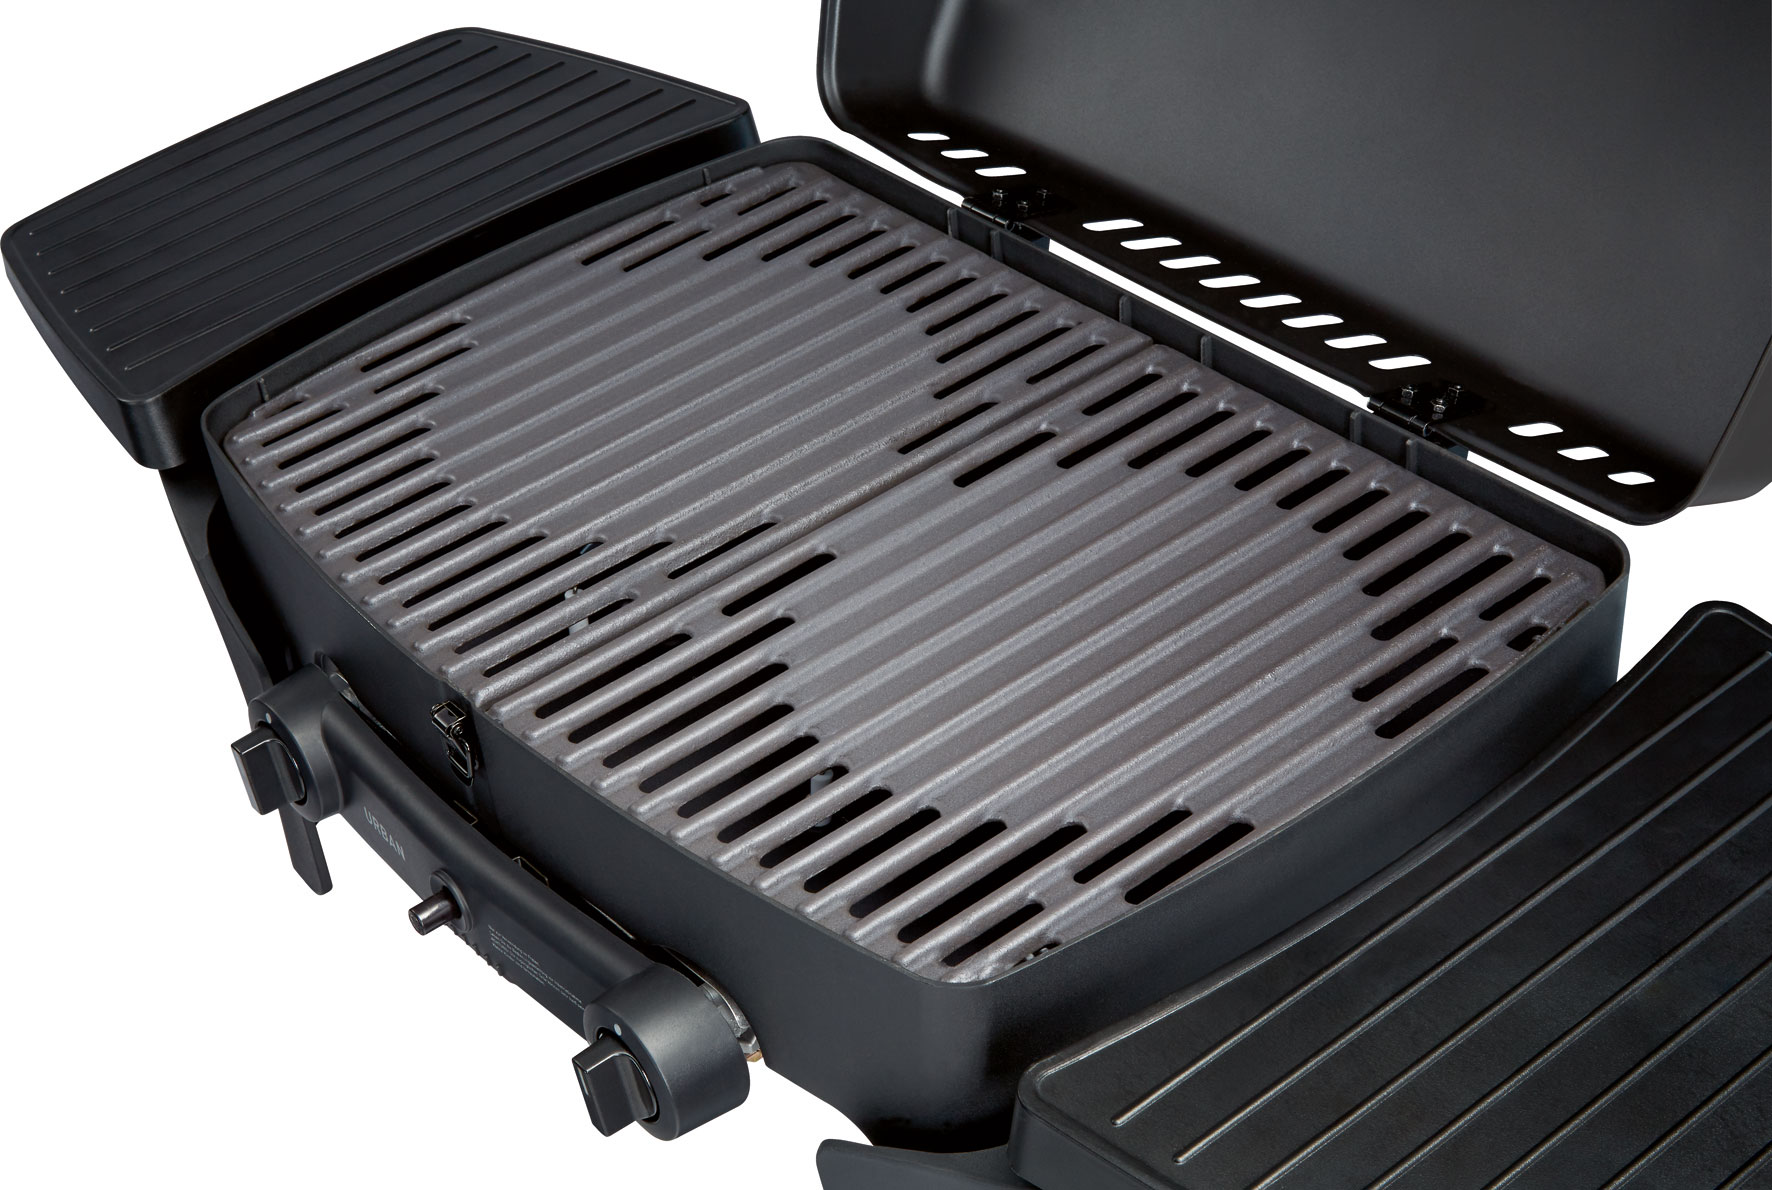 Enders Gasgrill Garantie : Enders gasgrill madison gas grill